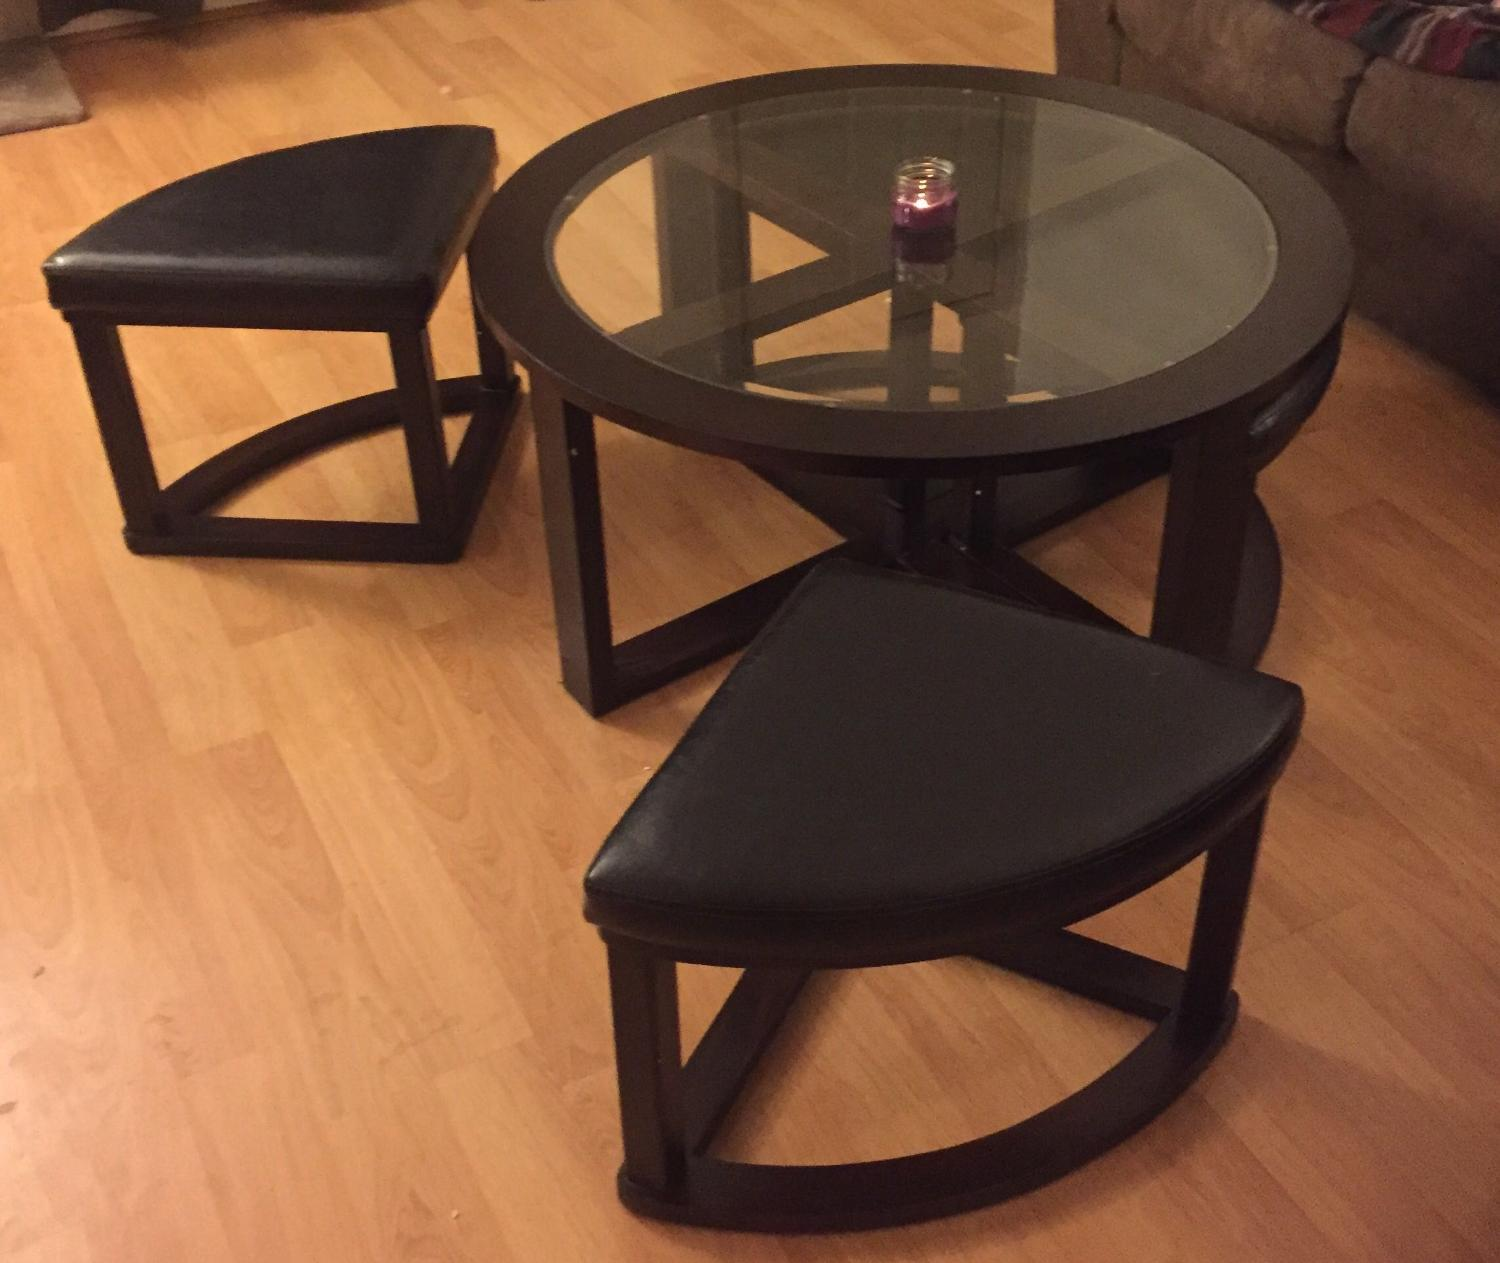 Find More Versatile Round Coffee Table With Seats For Sale At Up To 90 Off Regina Sk